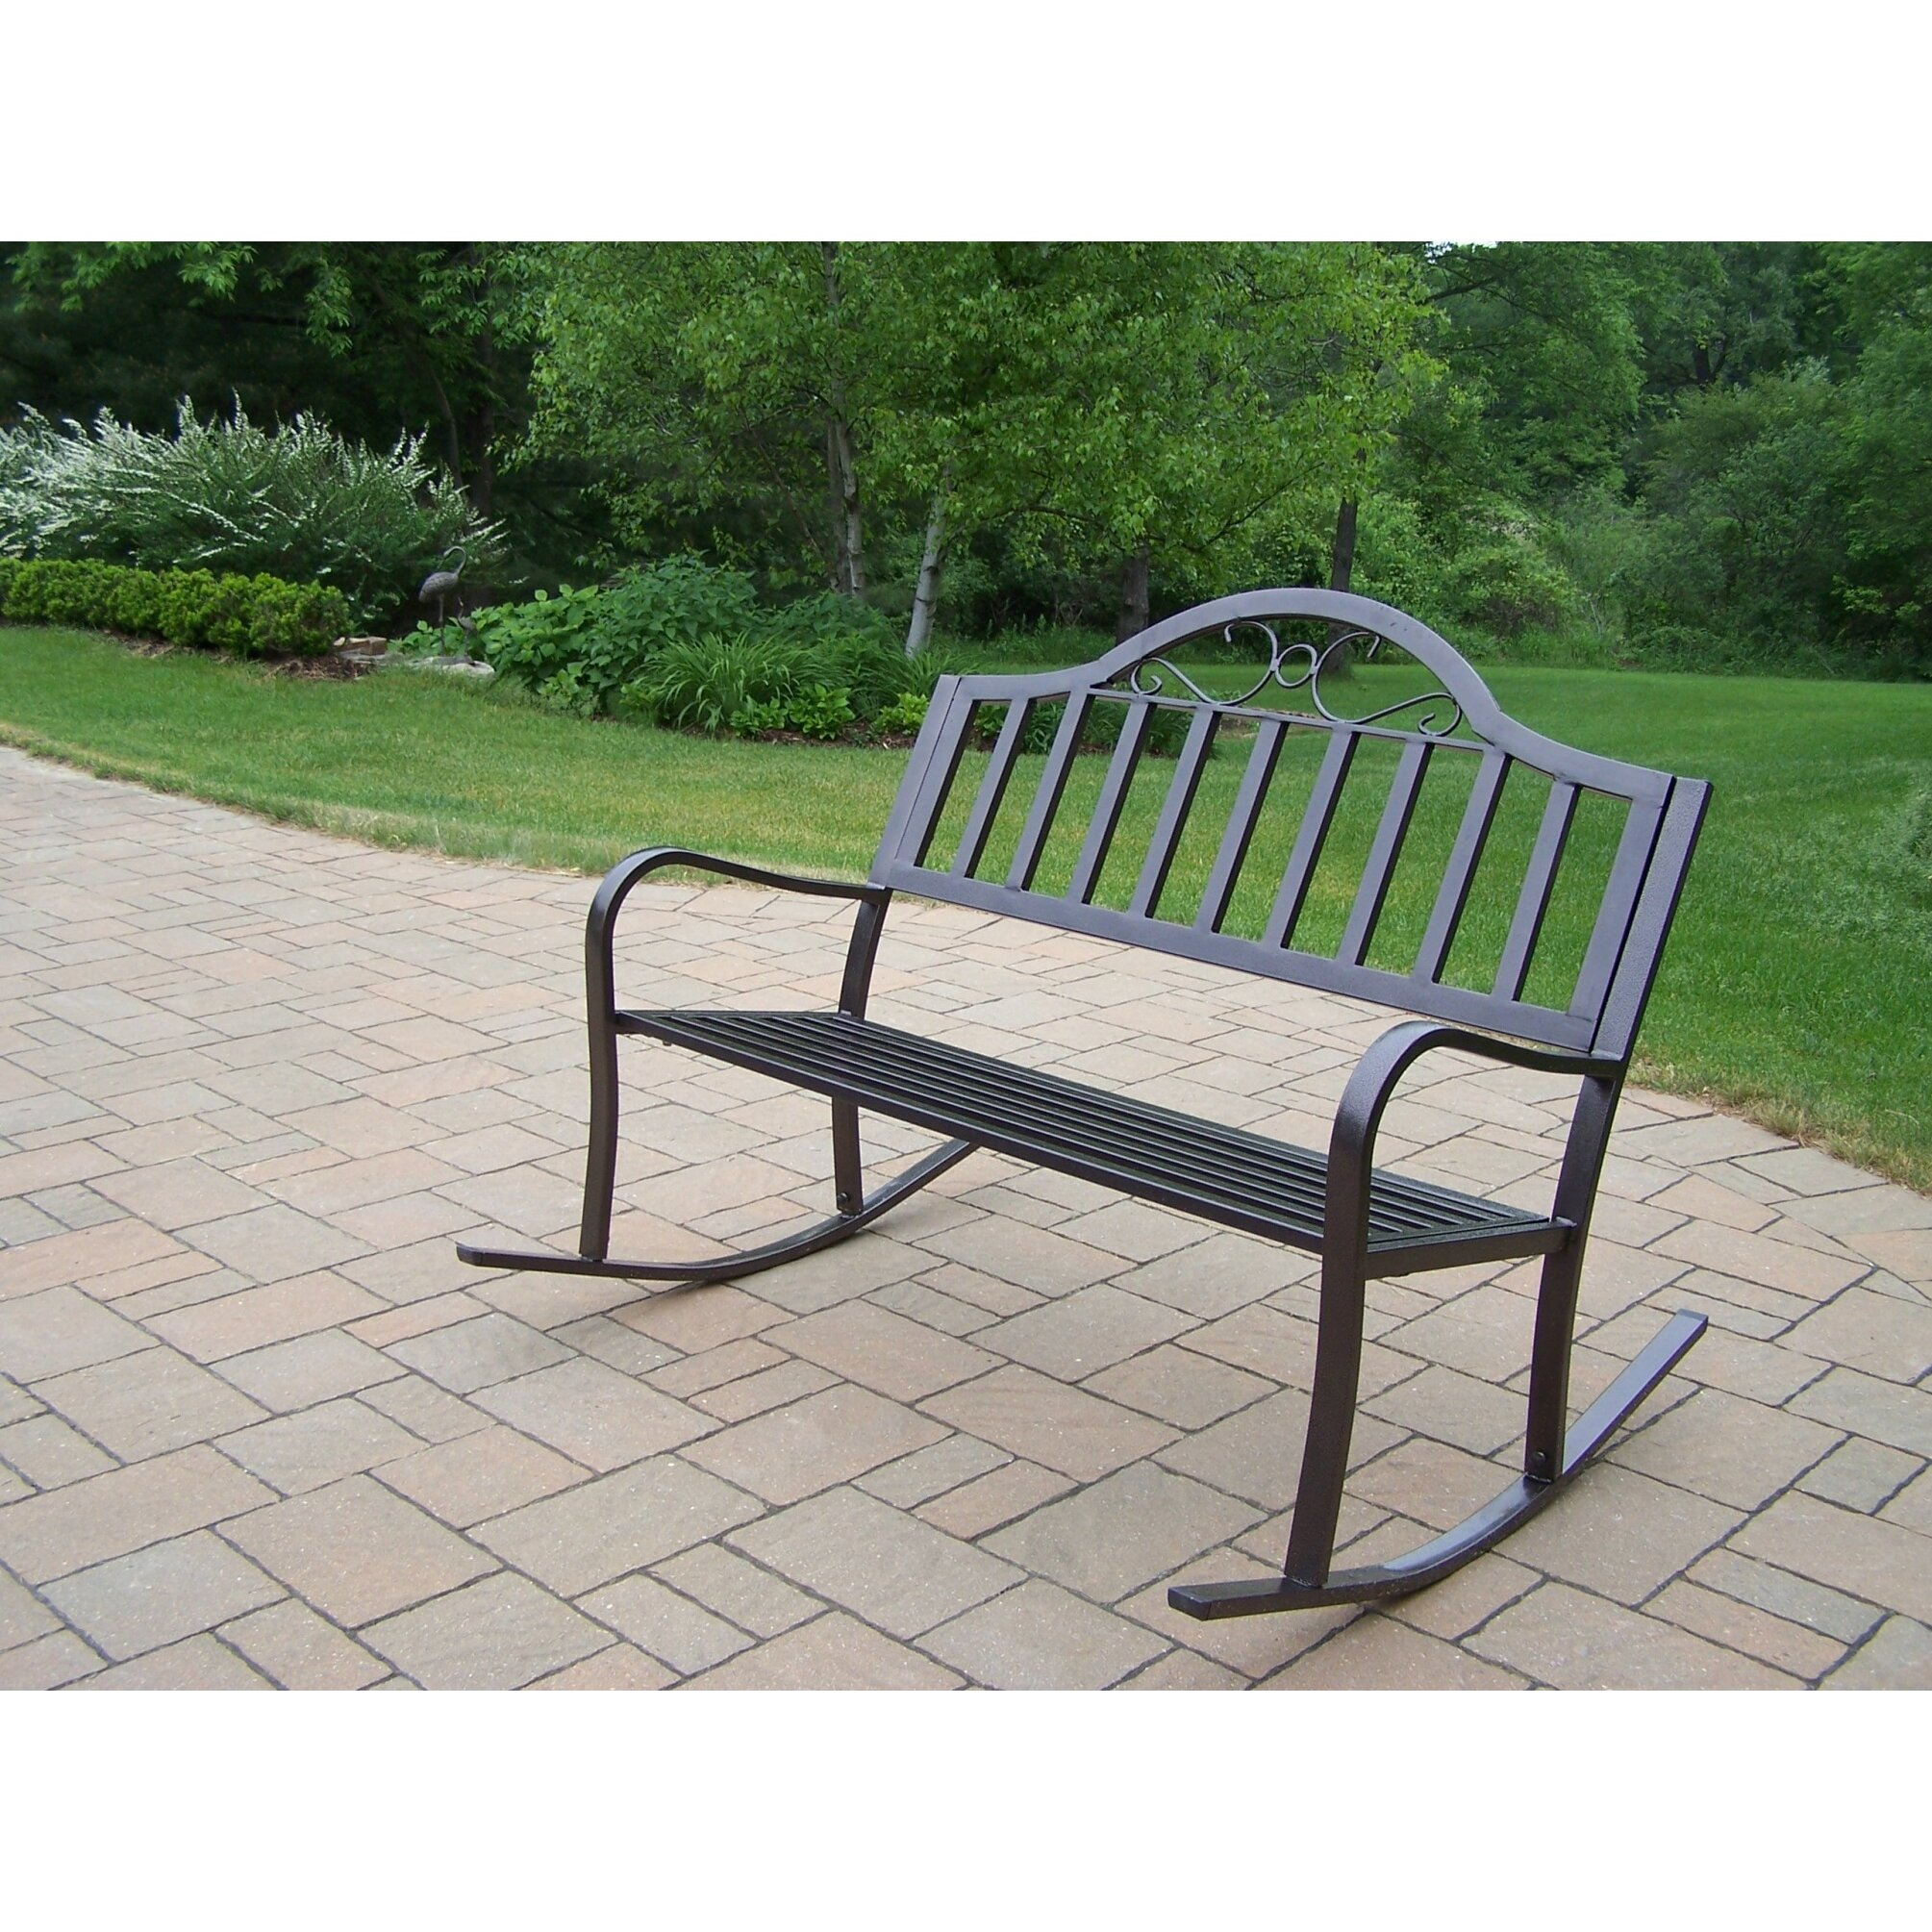 Oakland living rochester metal rocking garden bench reviews wayfair Aluminum benches